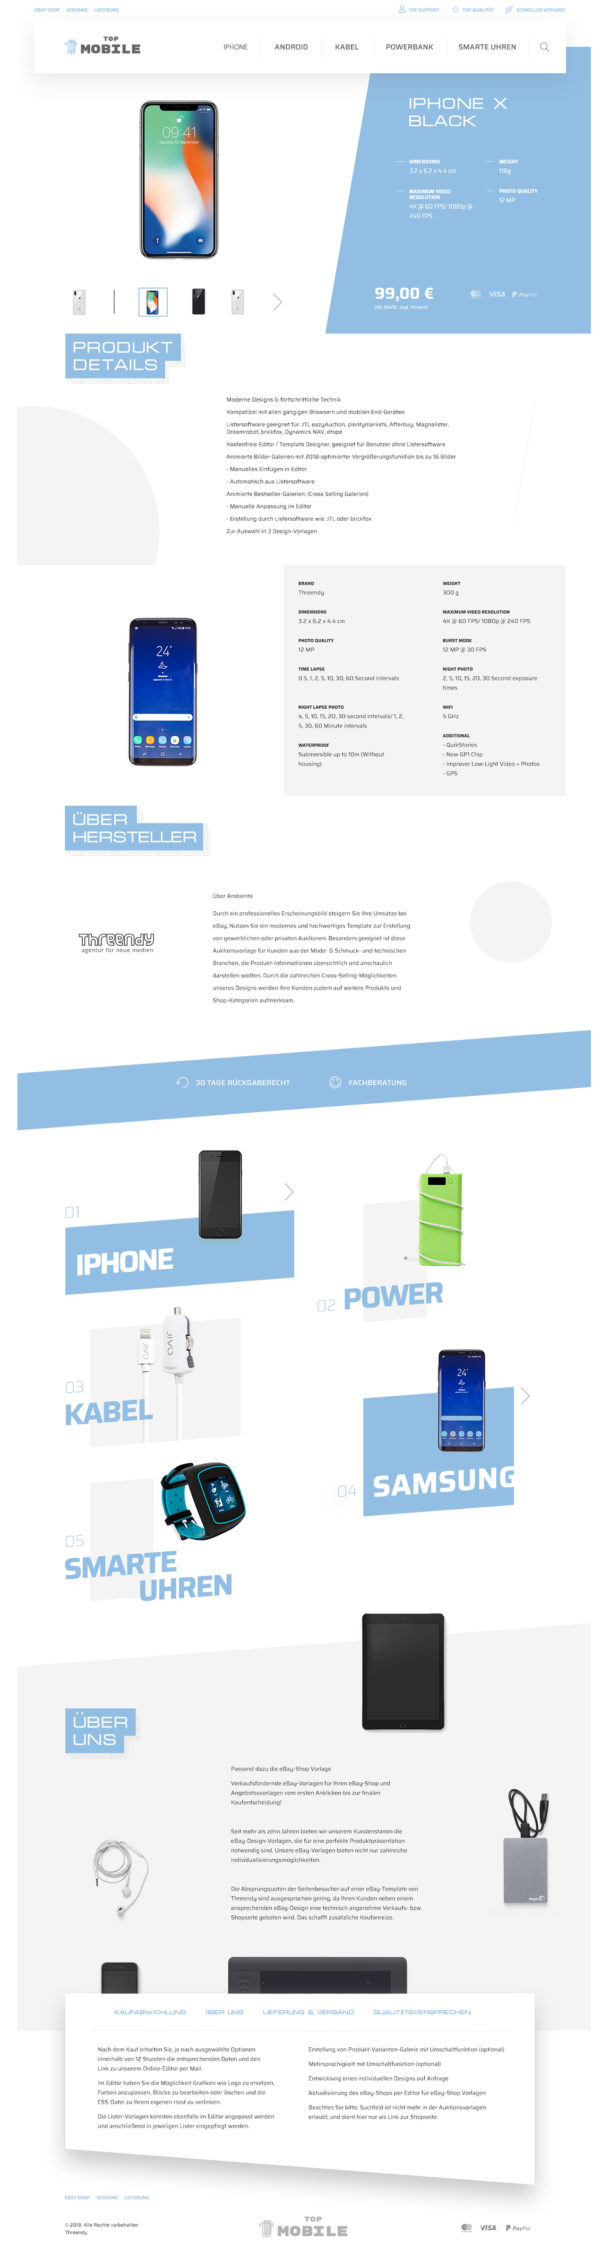 Auktion Template Mobile, Tablet & Smartphone Zubehör Branche